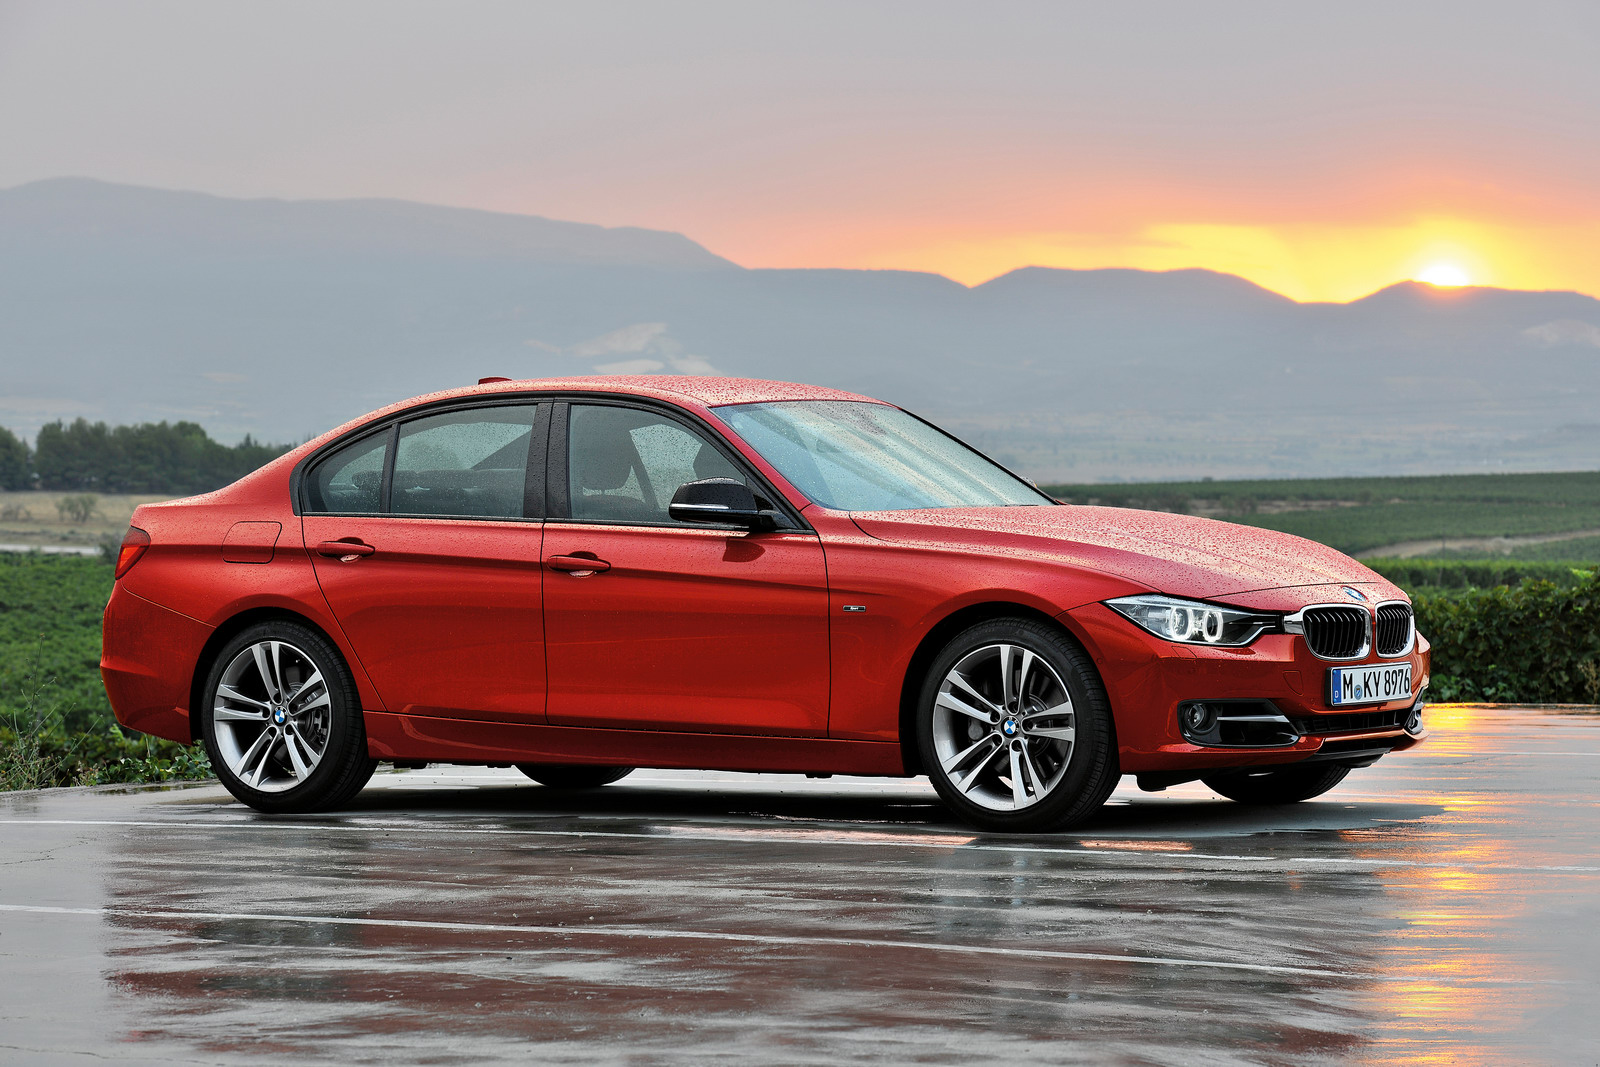 BMW 3 Series F30 Wallpaper For Android